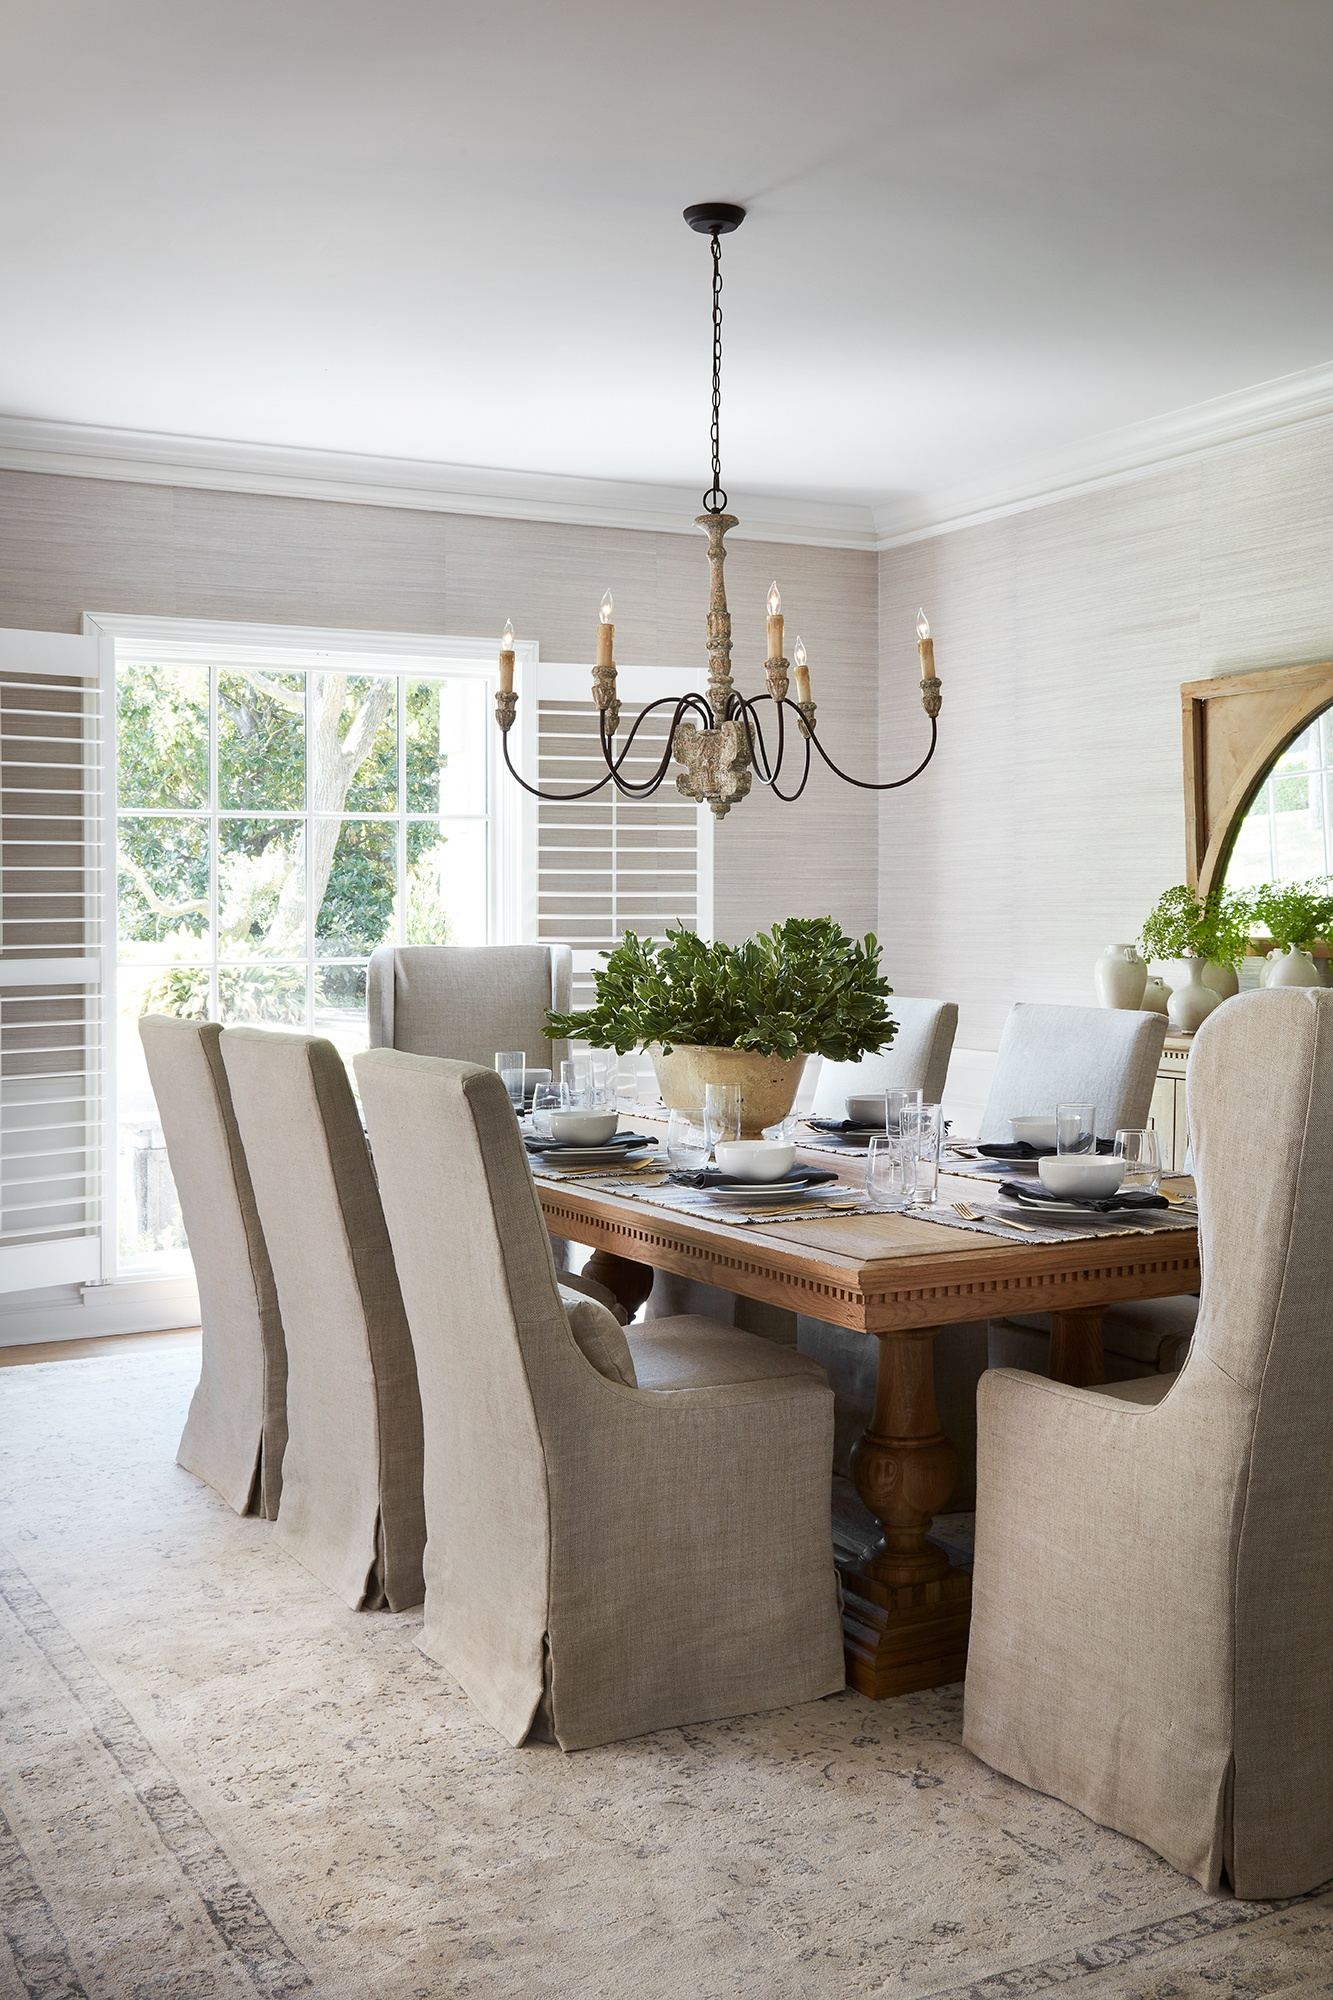 Dining room in the Club House on HGTV's Fixer Upper - a renovation by Chip and Joanna Gaines with a French country spirit. #fixerupper #theclubhouse #frenchfarmhouse #getthelook #joannagaines #frenchcountry #interiordesign #diningroom #homedecor